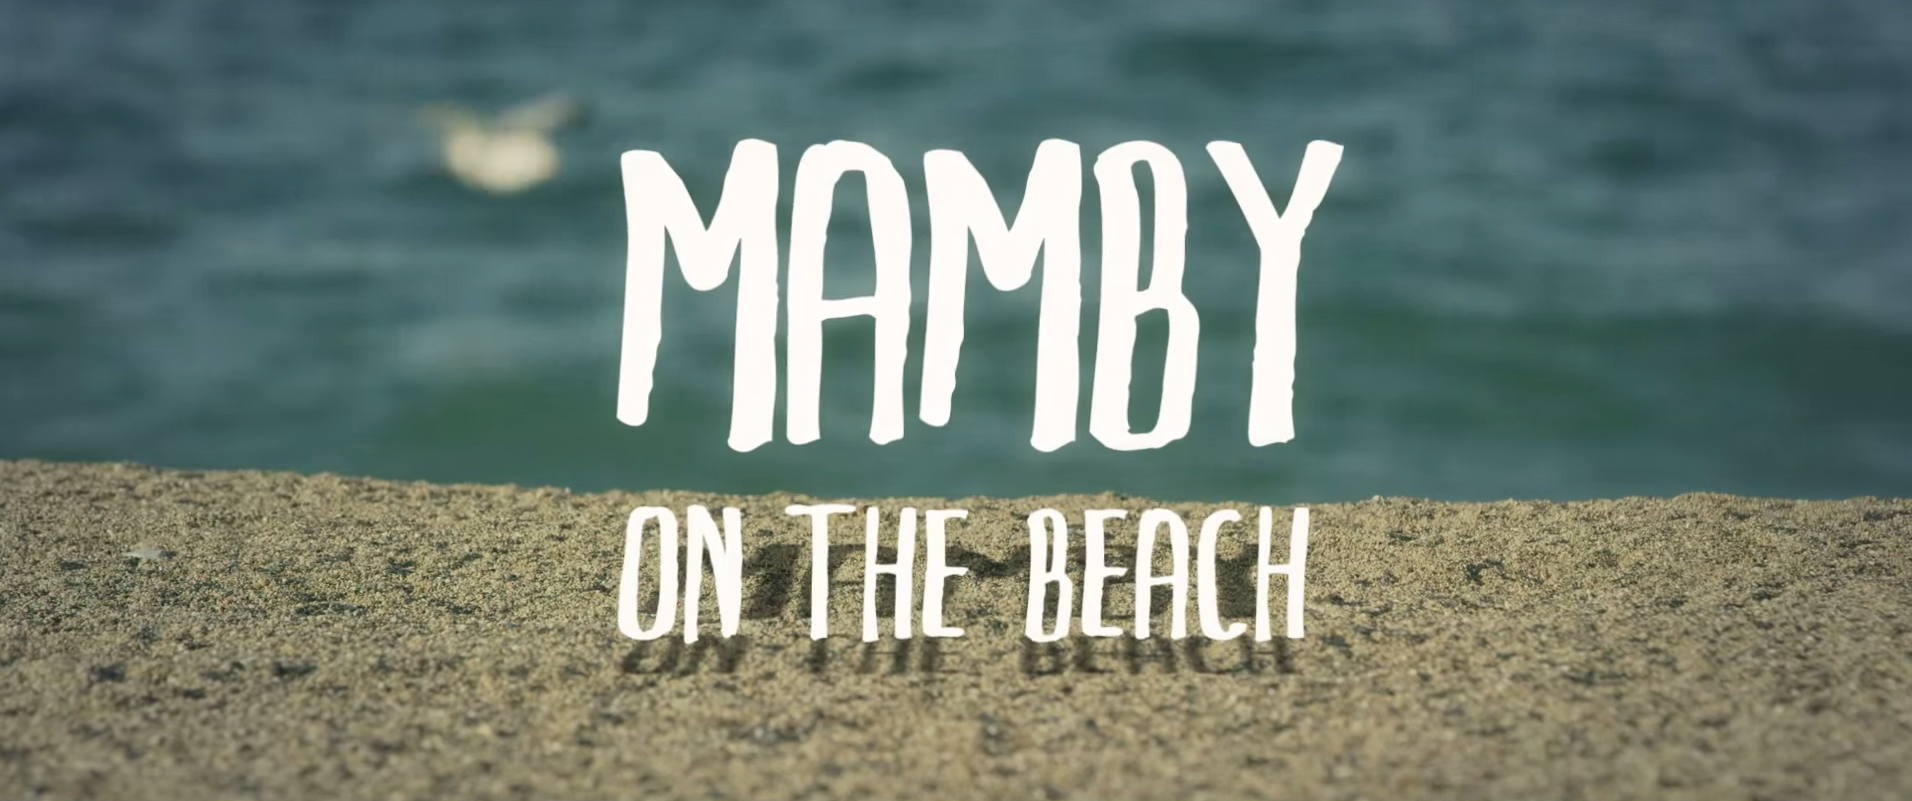 Mamby on the Beach. Image by: Mamby on the Beach / YouTube